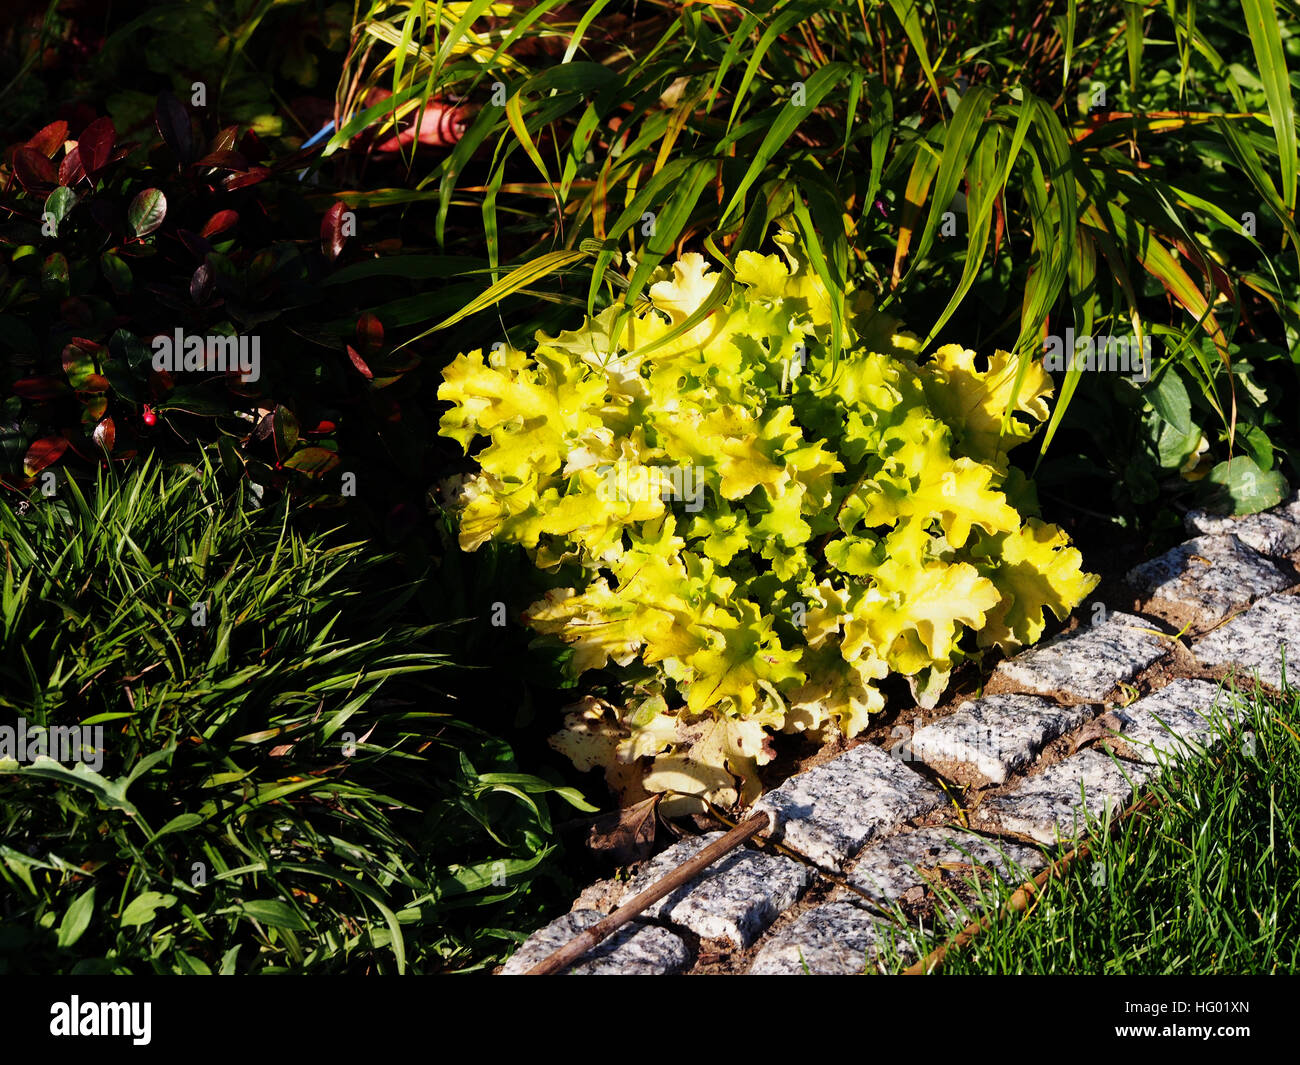 Heuchera (coral bells, alumroot) 'Lime Marmalade' with Hakonechloa (Hakone grass) and Luzula pilosa 'Igel' - Stock Image